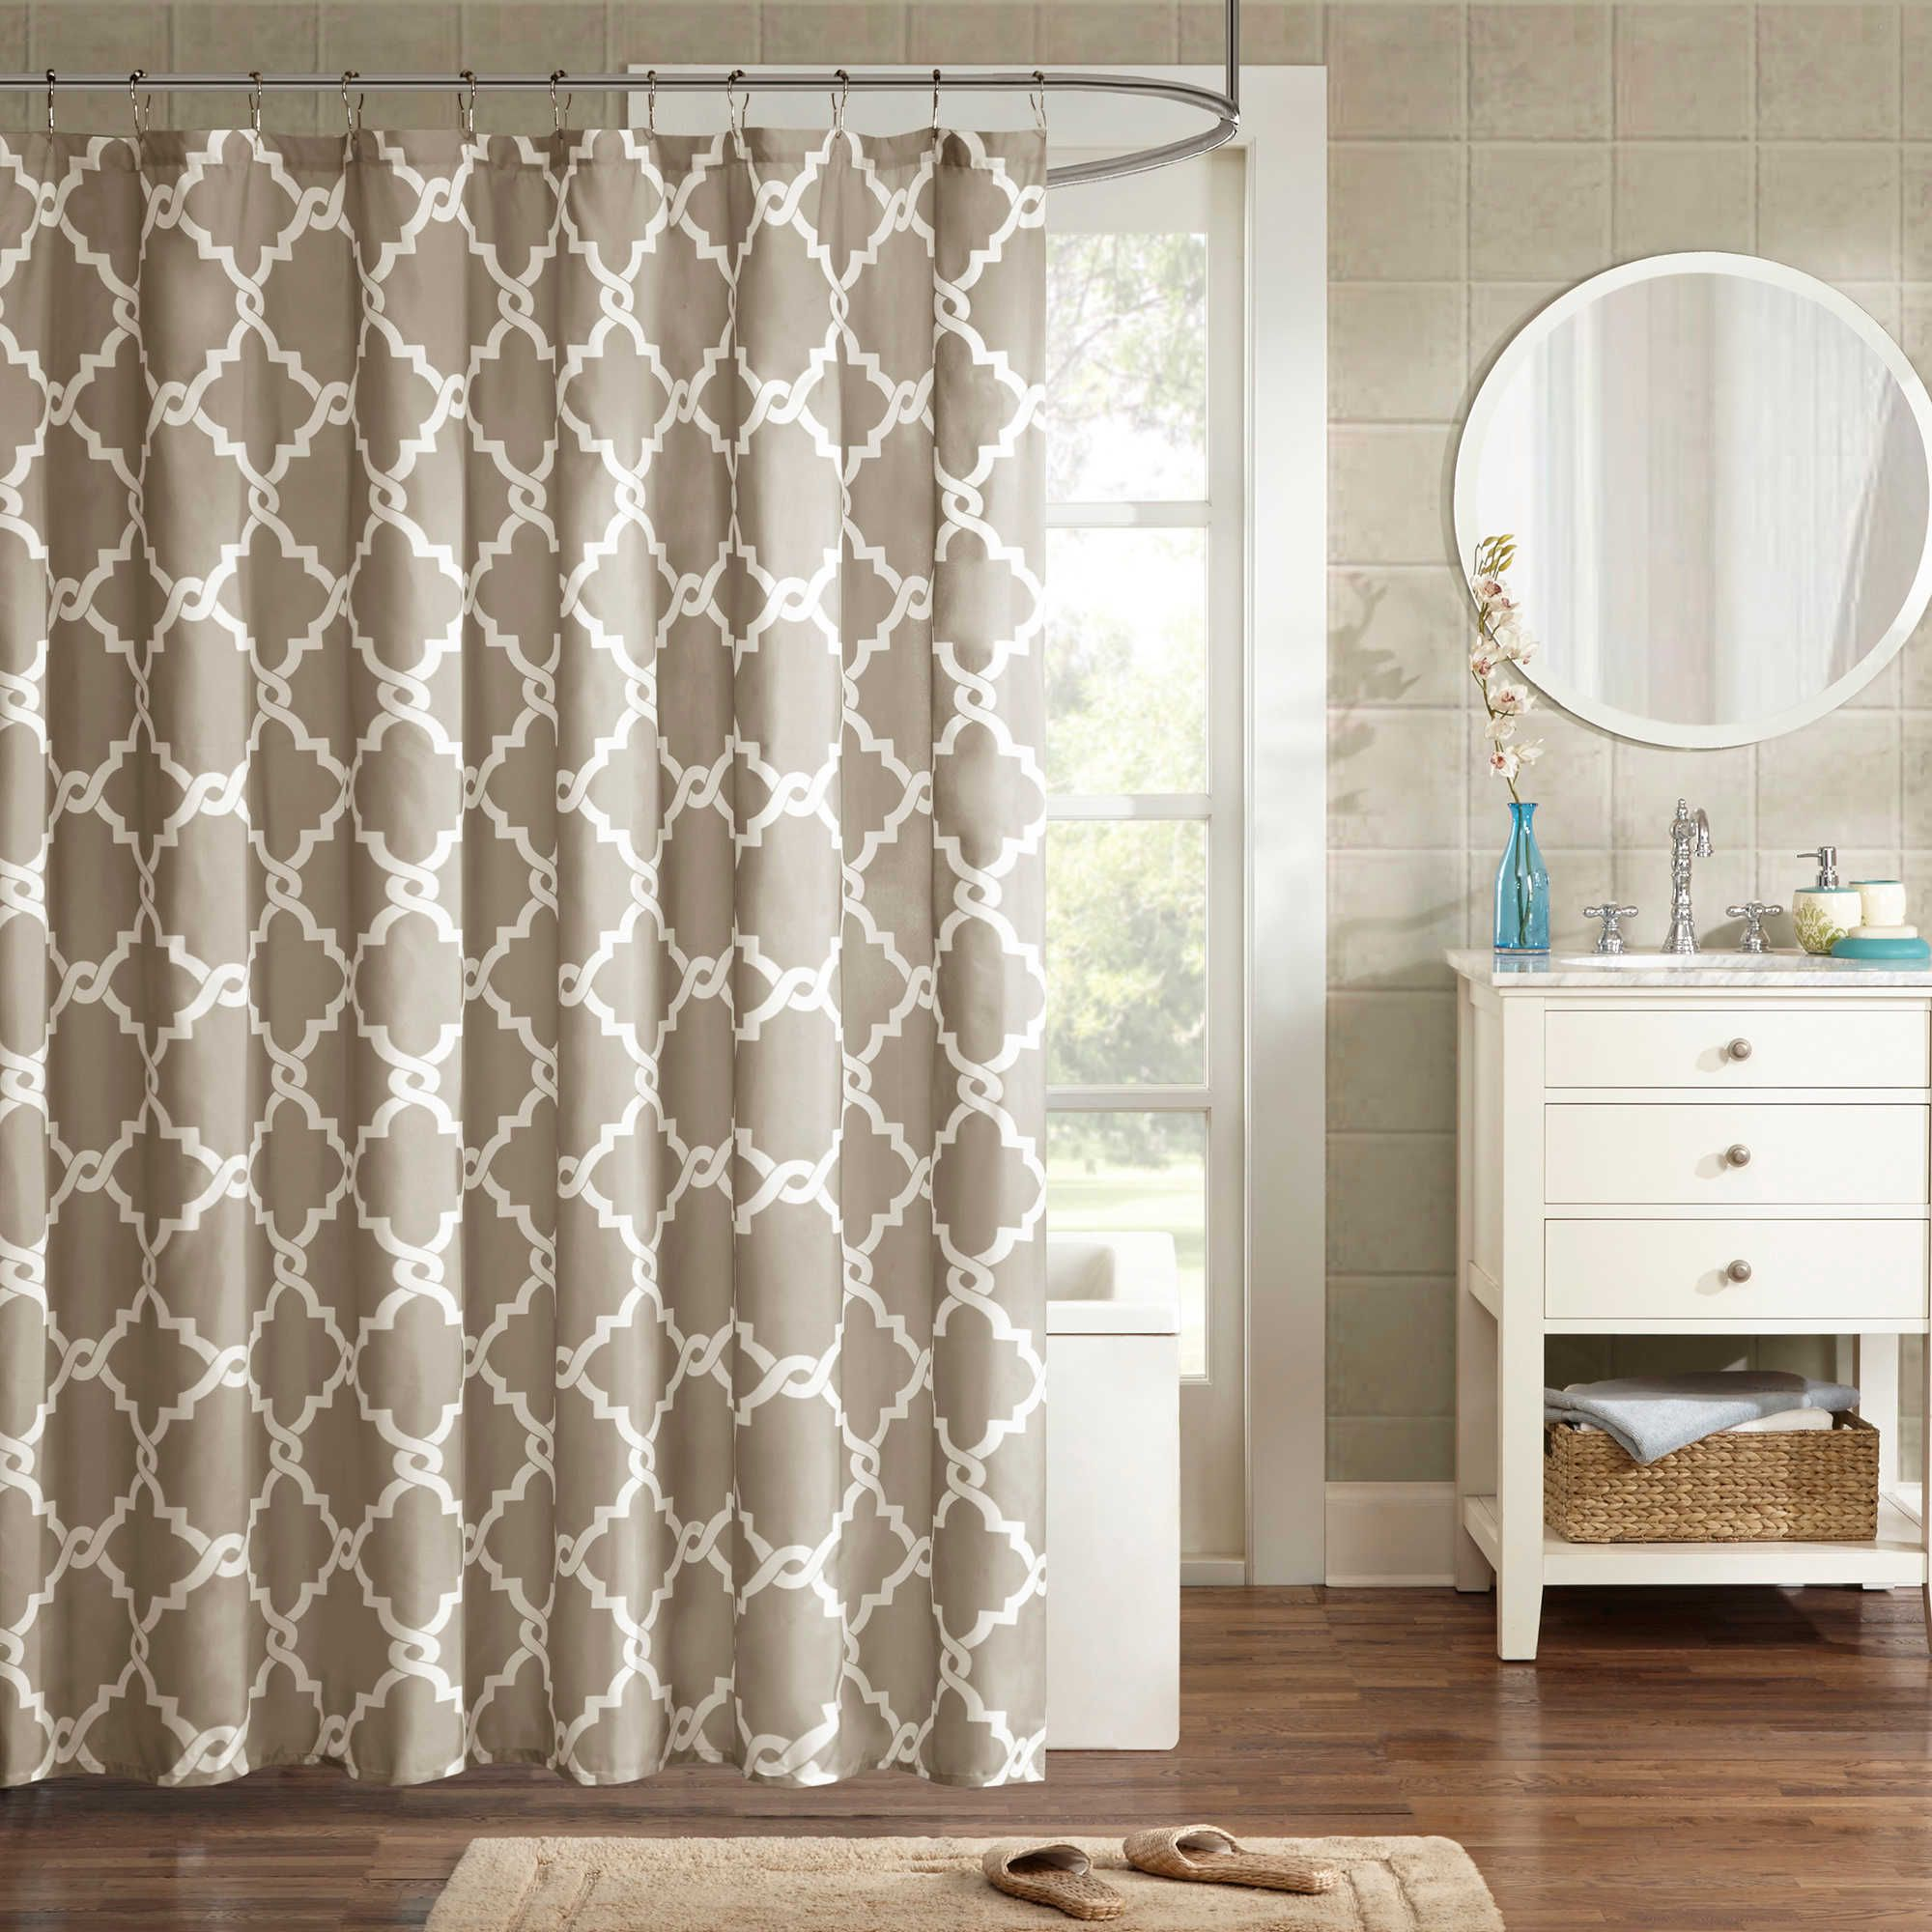 The Best Shower Curtains Of 2020